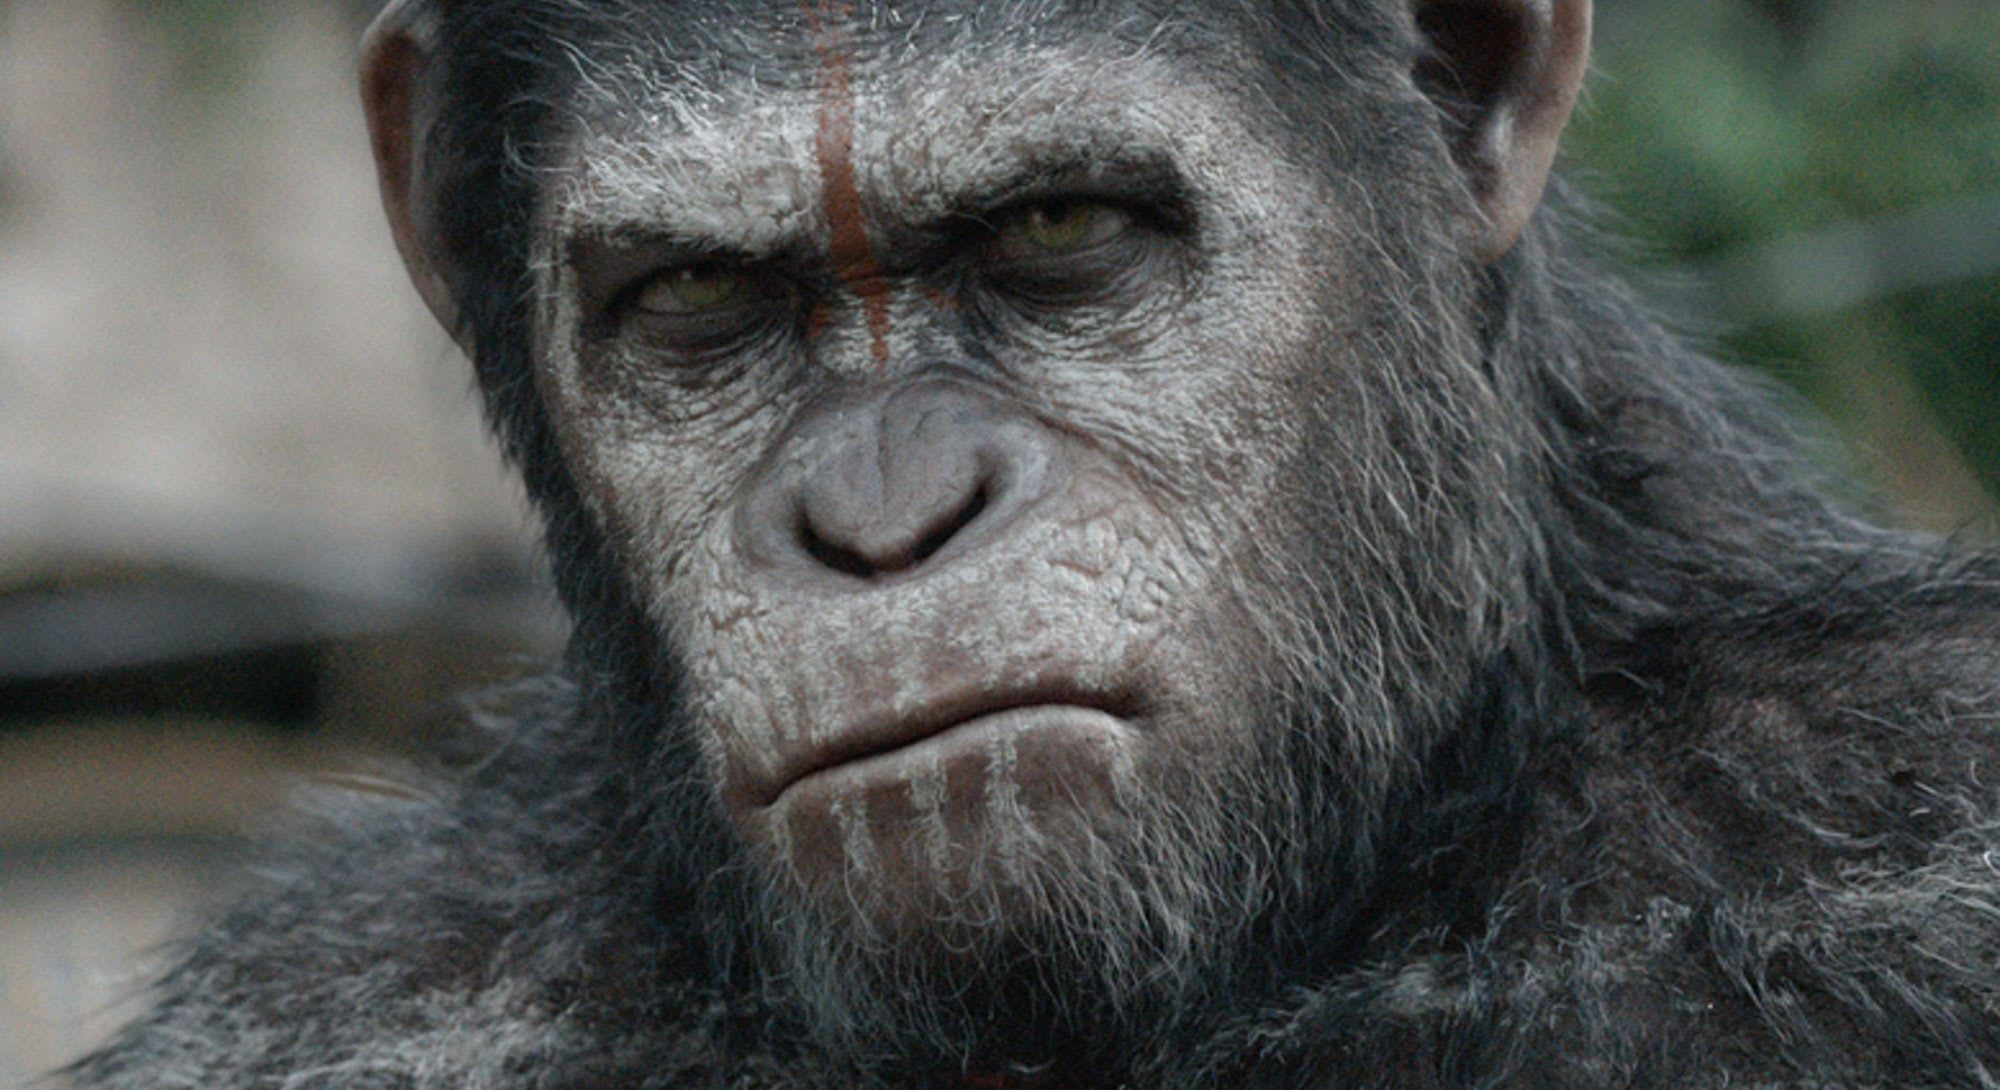 Podcast | Review of the War for the Planet of the Apes